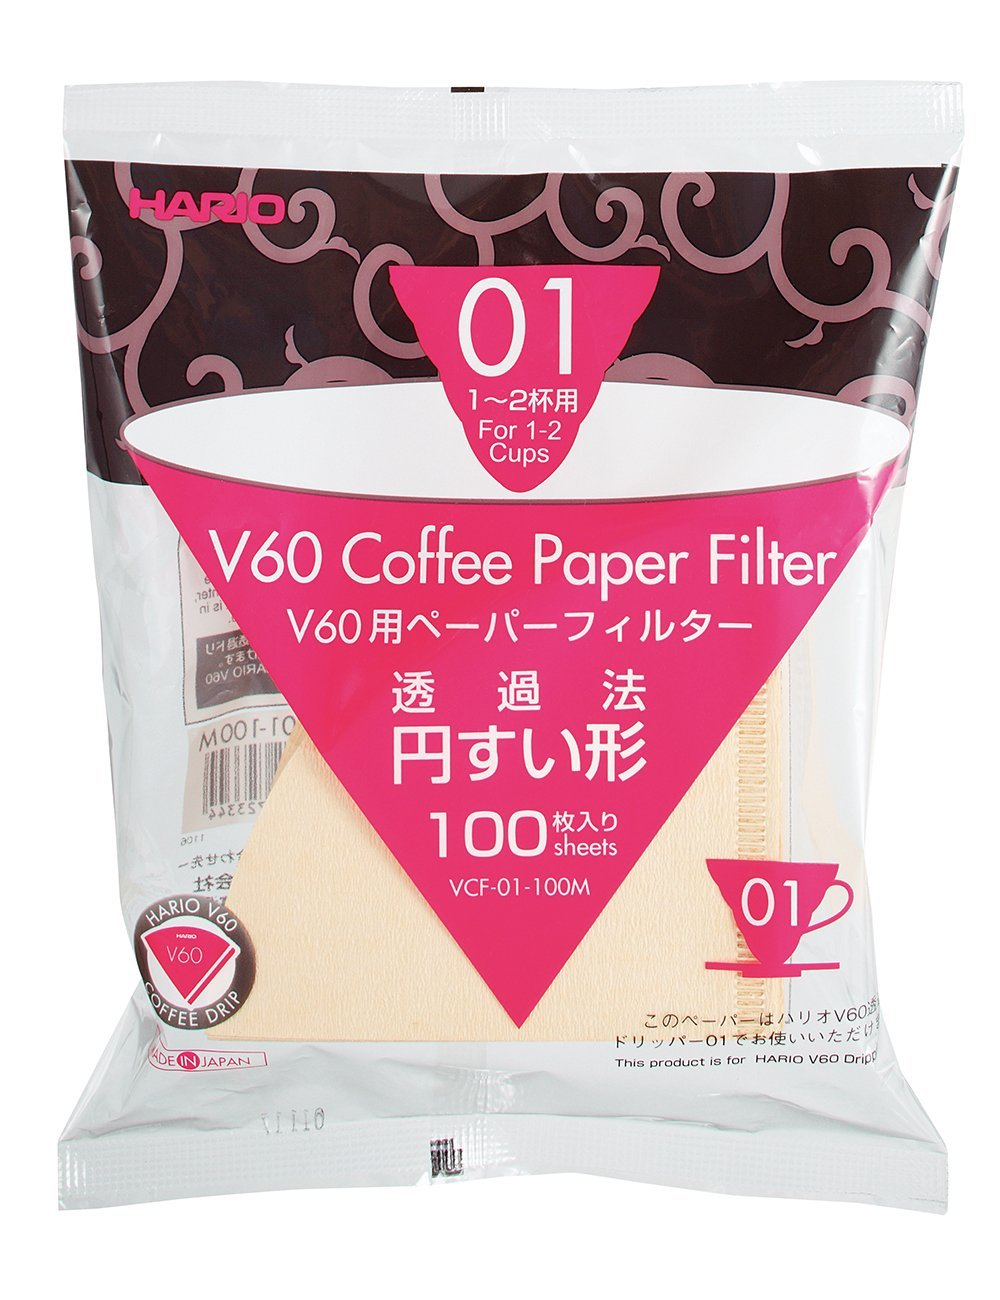 Hario vcf 01 Coffee Natural Paper Filters No bleach for 2 cups for Barista VCF-01 suitable for vd-01